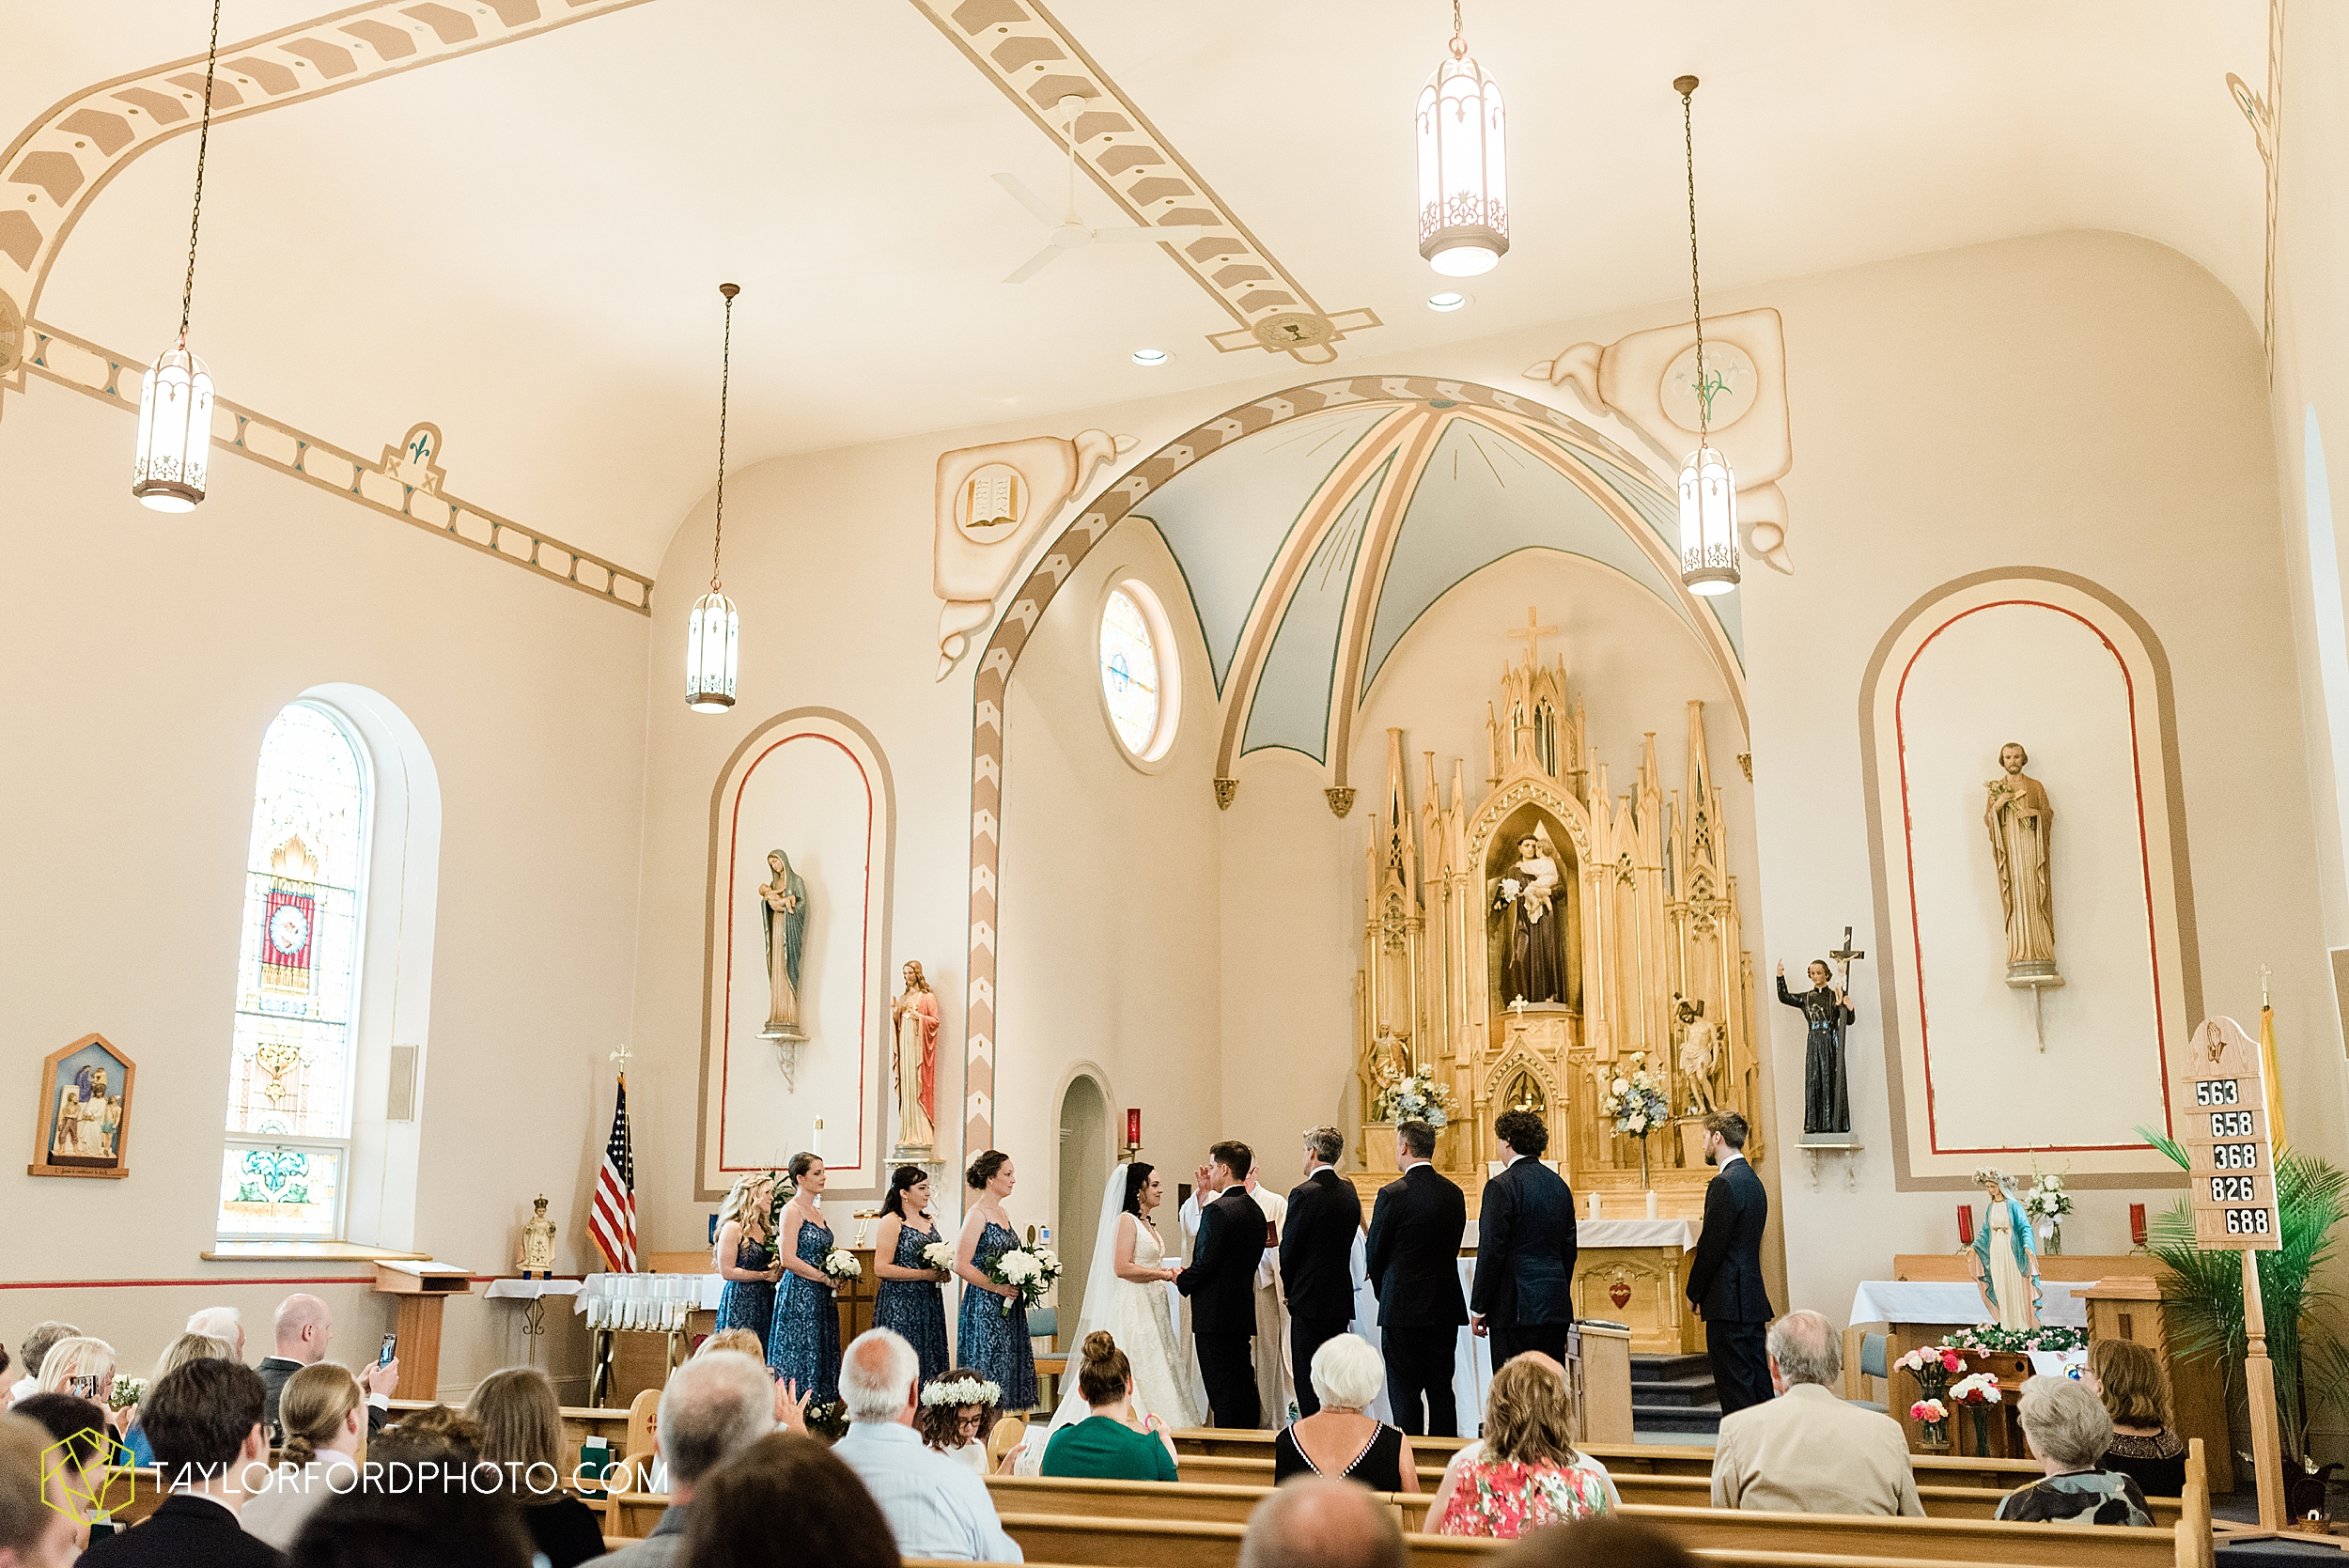 fort-recovery-ohio-saint-anthony-church-columbia-city-joseph-decuis-farmstead-tri-lakes-shriner-lake-wawasee-wedding-photographer-photography-taylor-ford-hirschy-photographer_2876.jpg